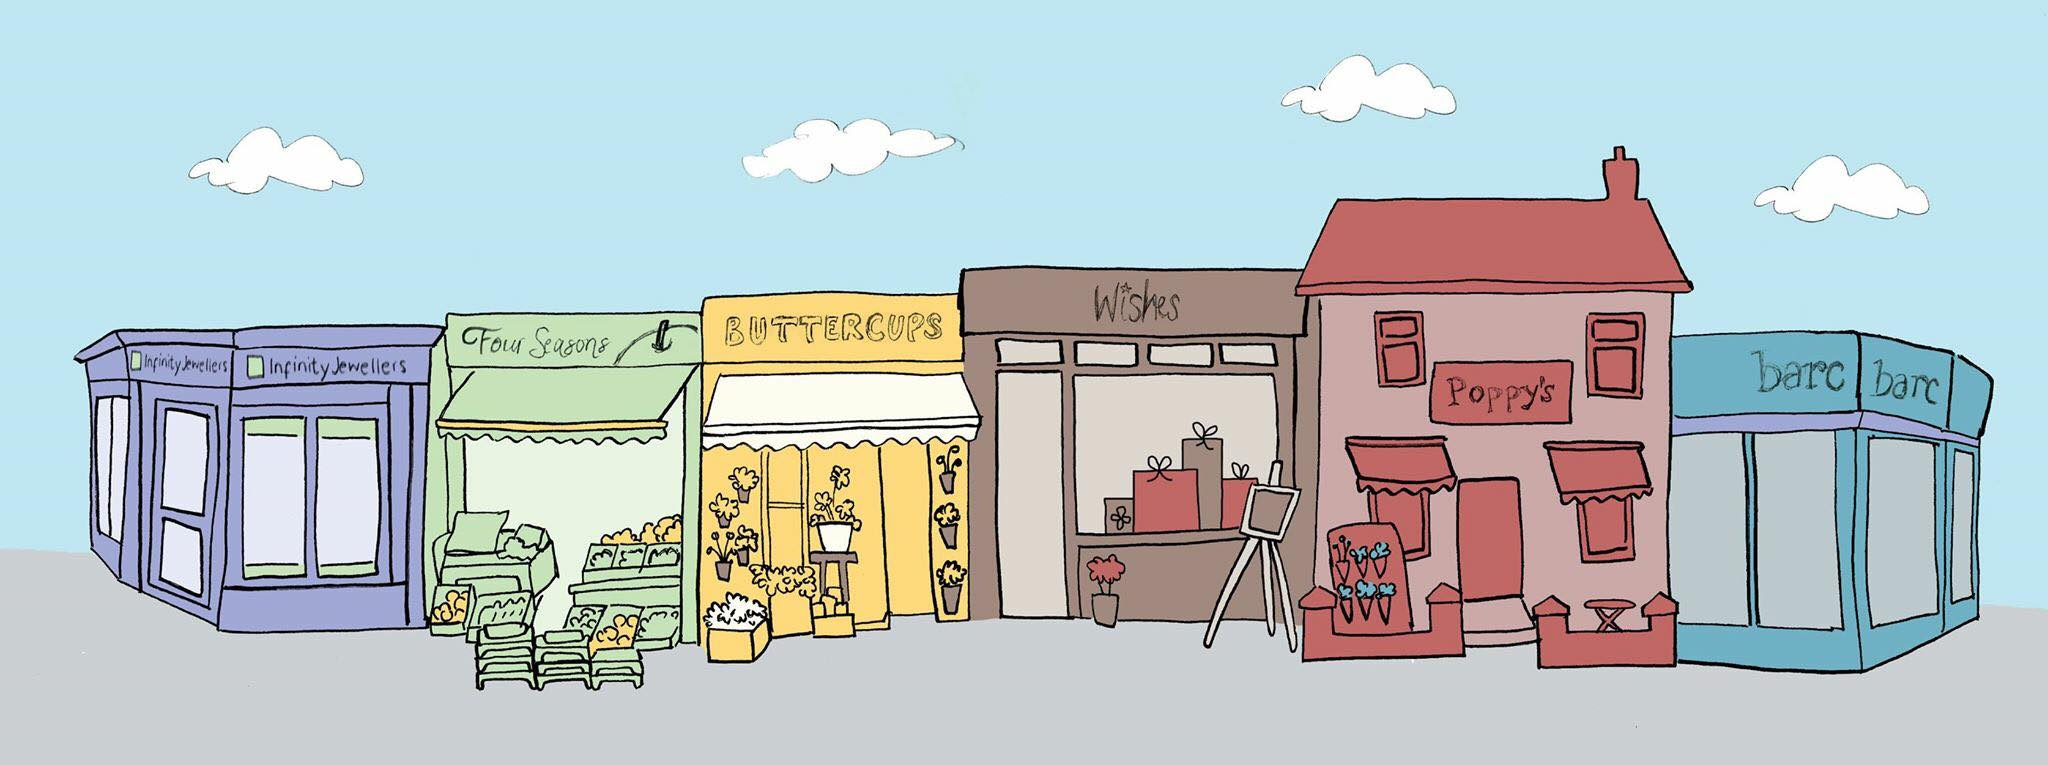 Cudworth Shops Illustration